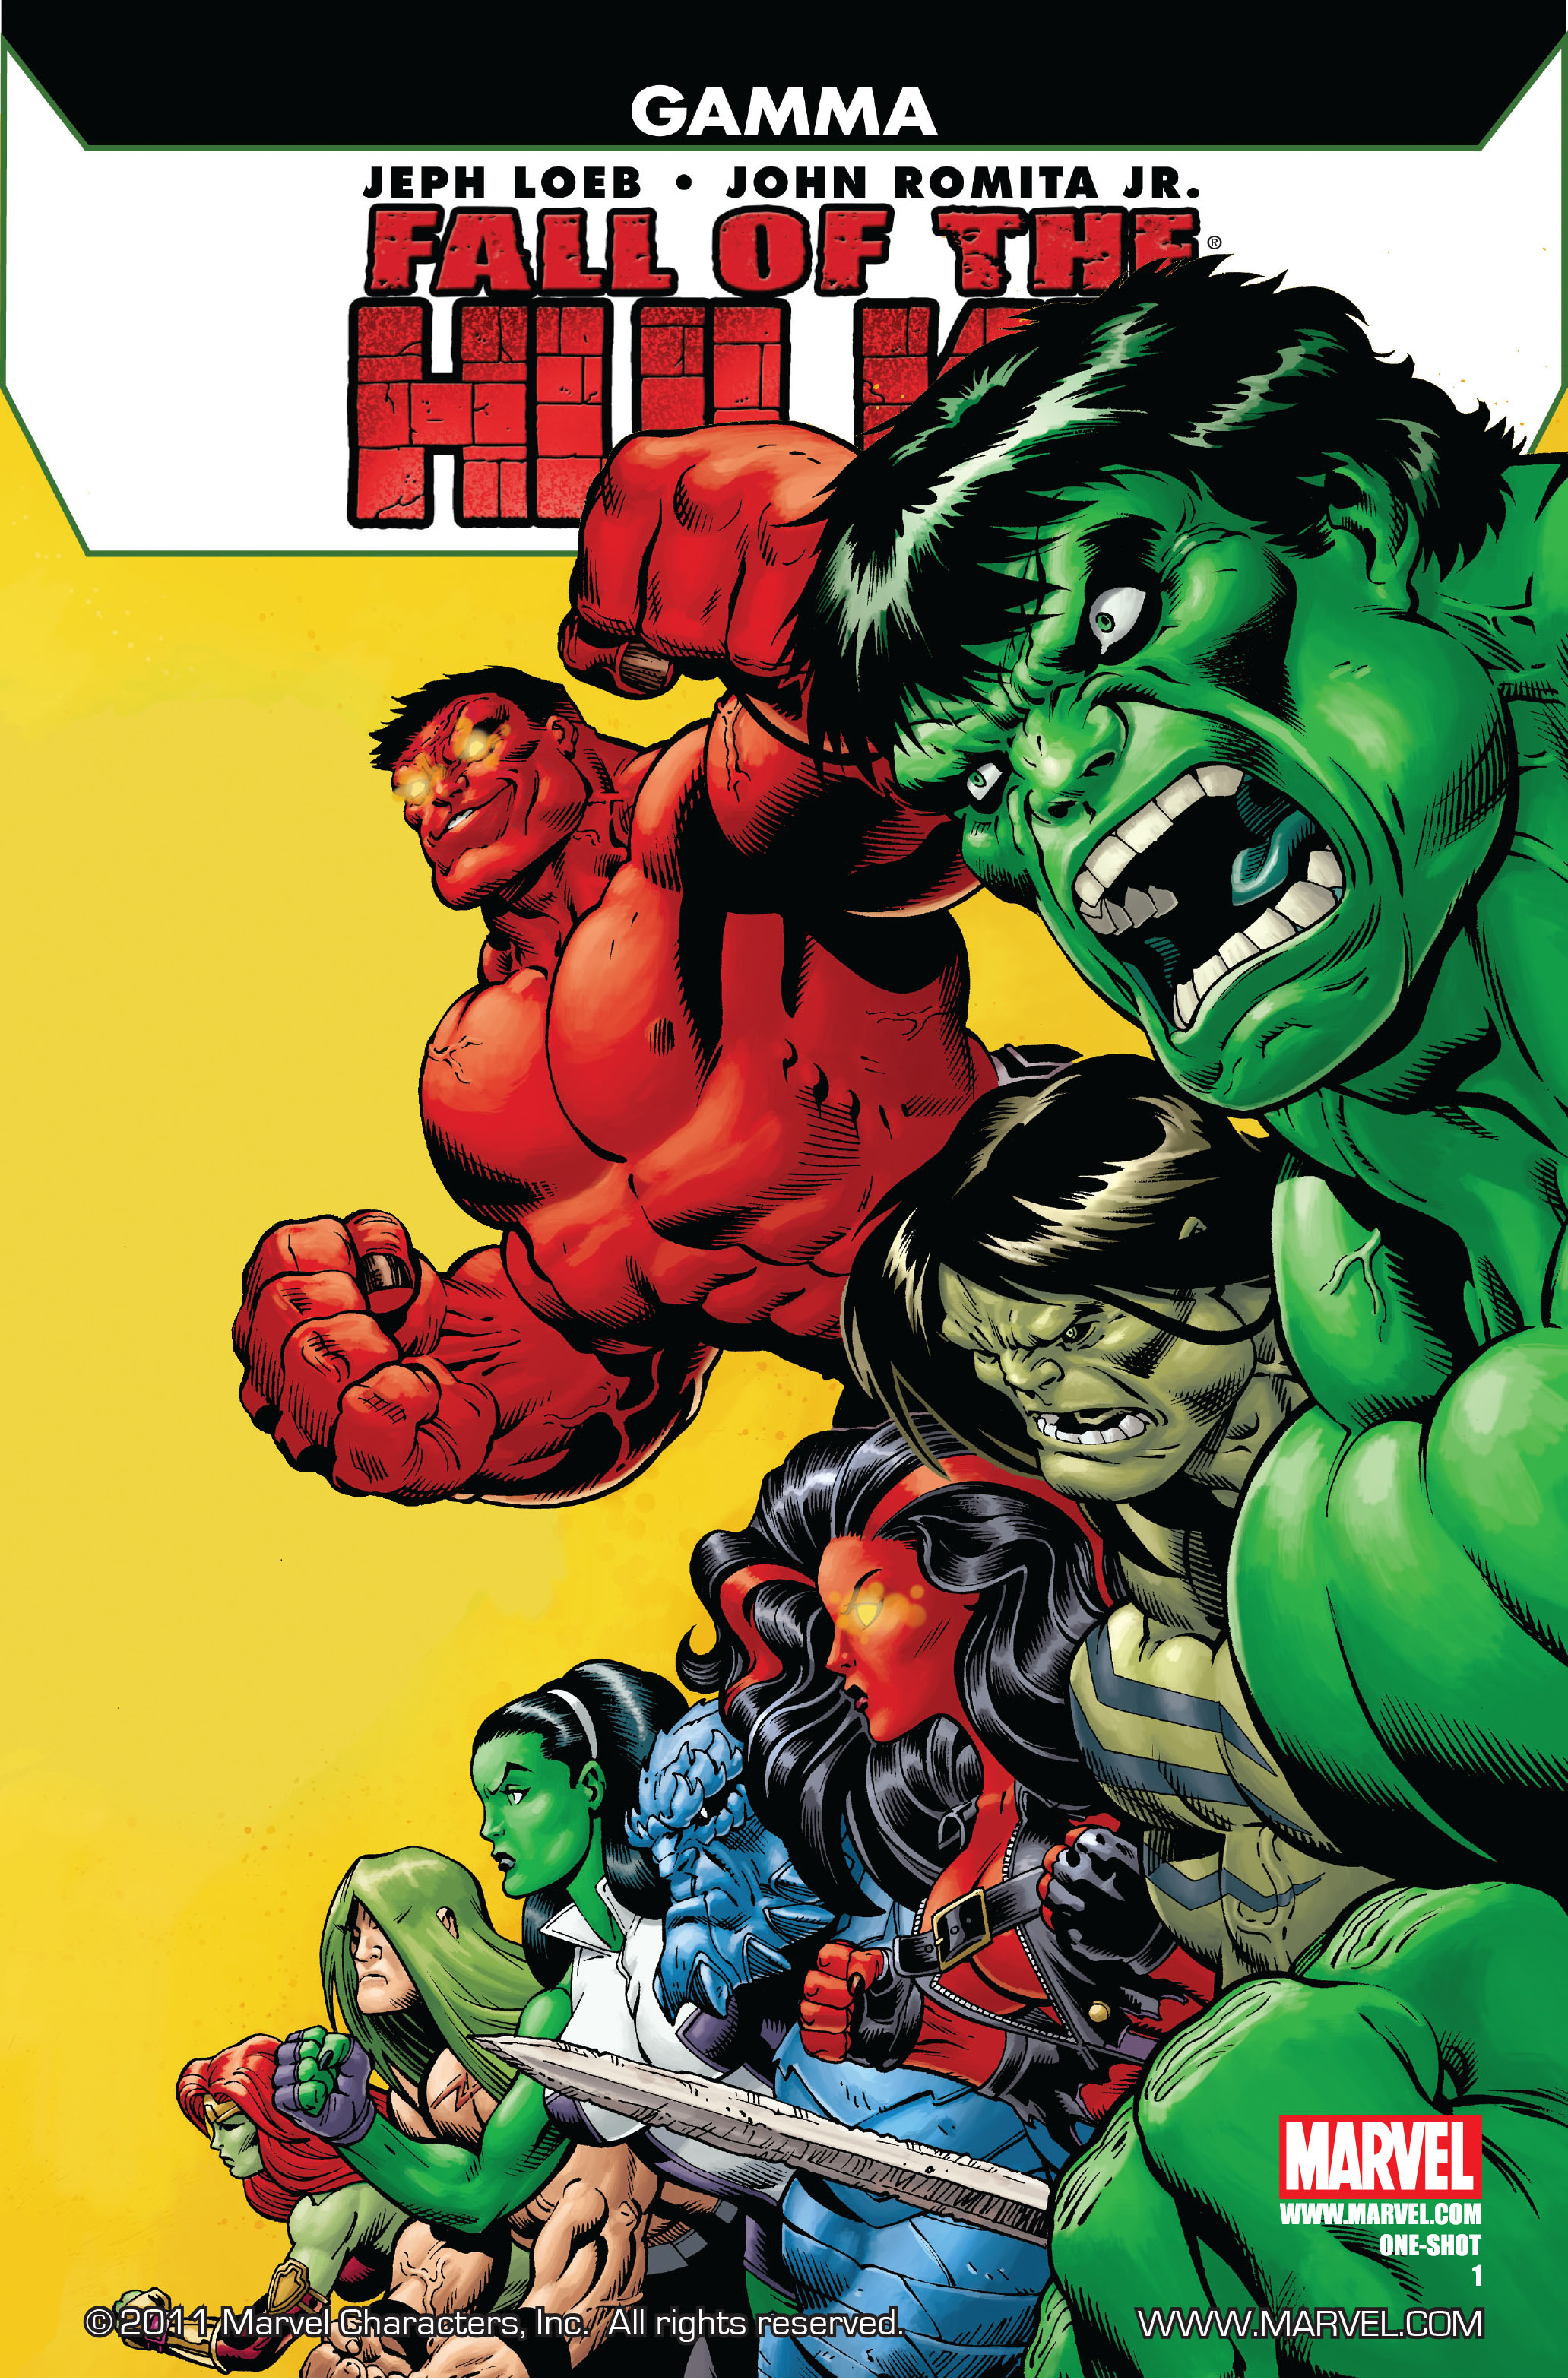 Fall of the Hulks: Gamma Vol 1 1